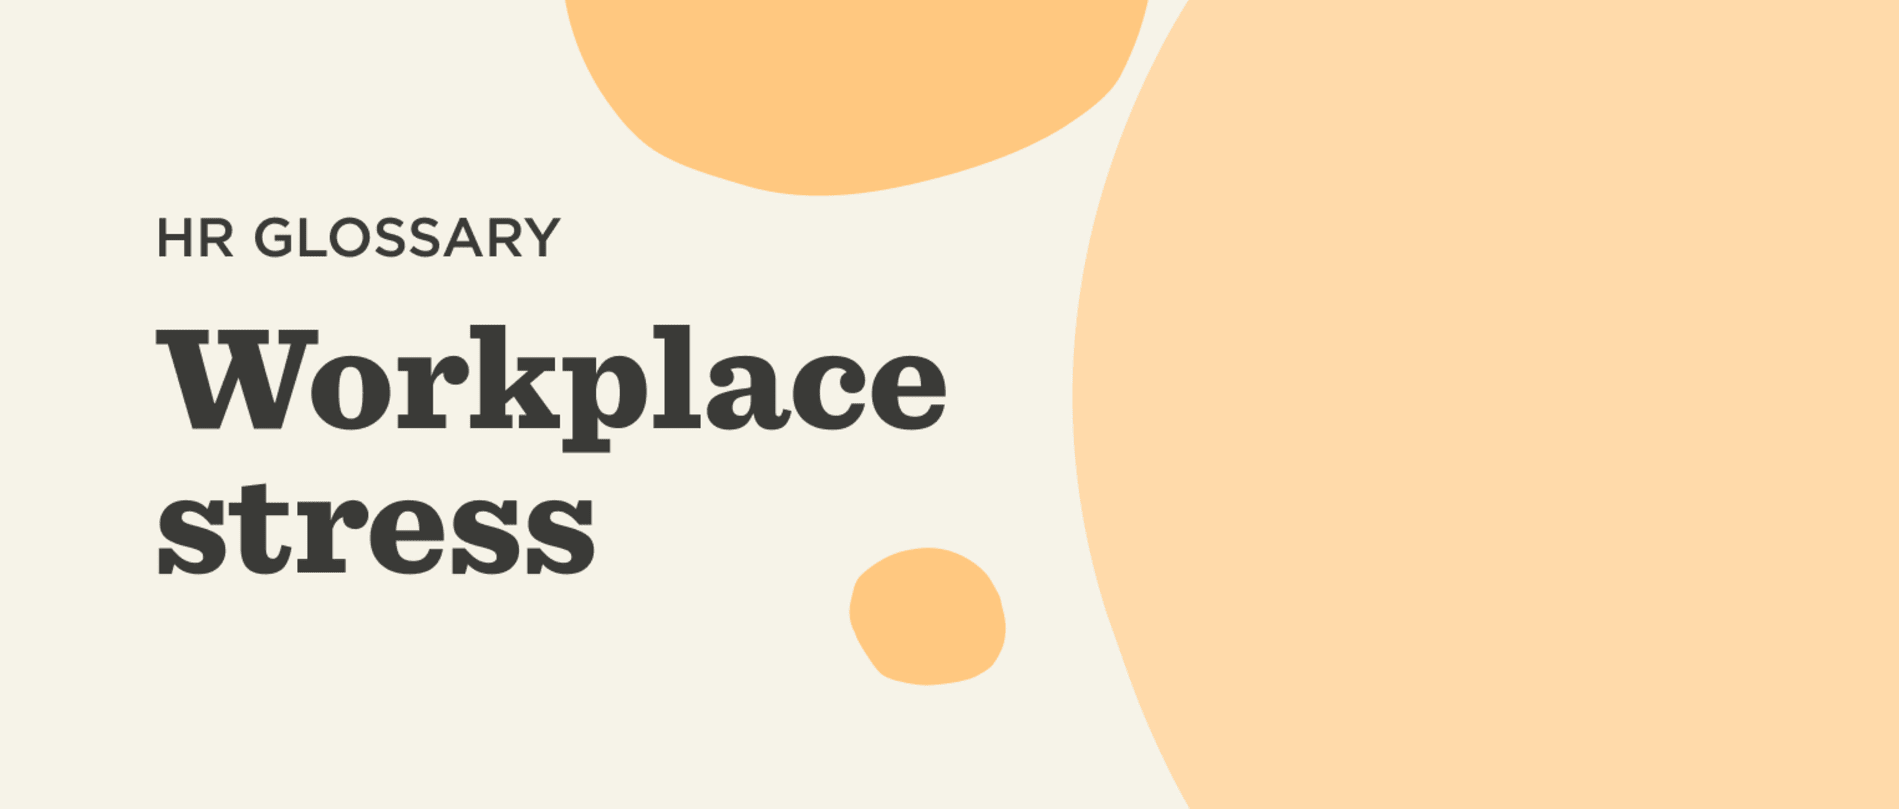 What is workplace stress? - Workplace-stress-Glossary-banner-1.png